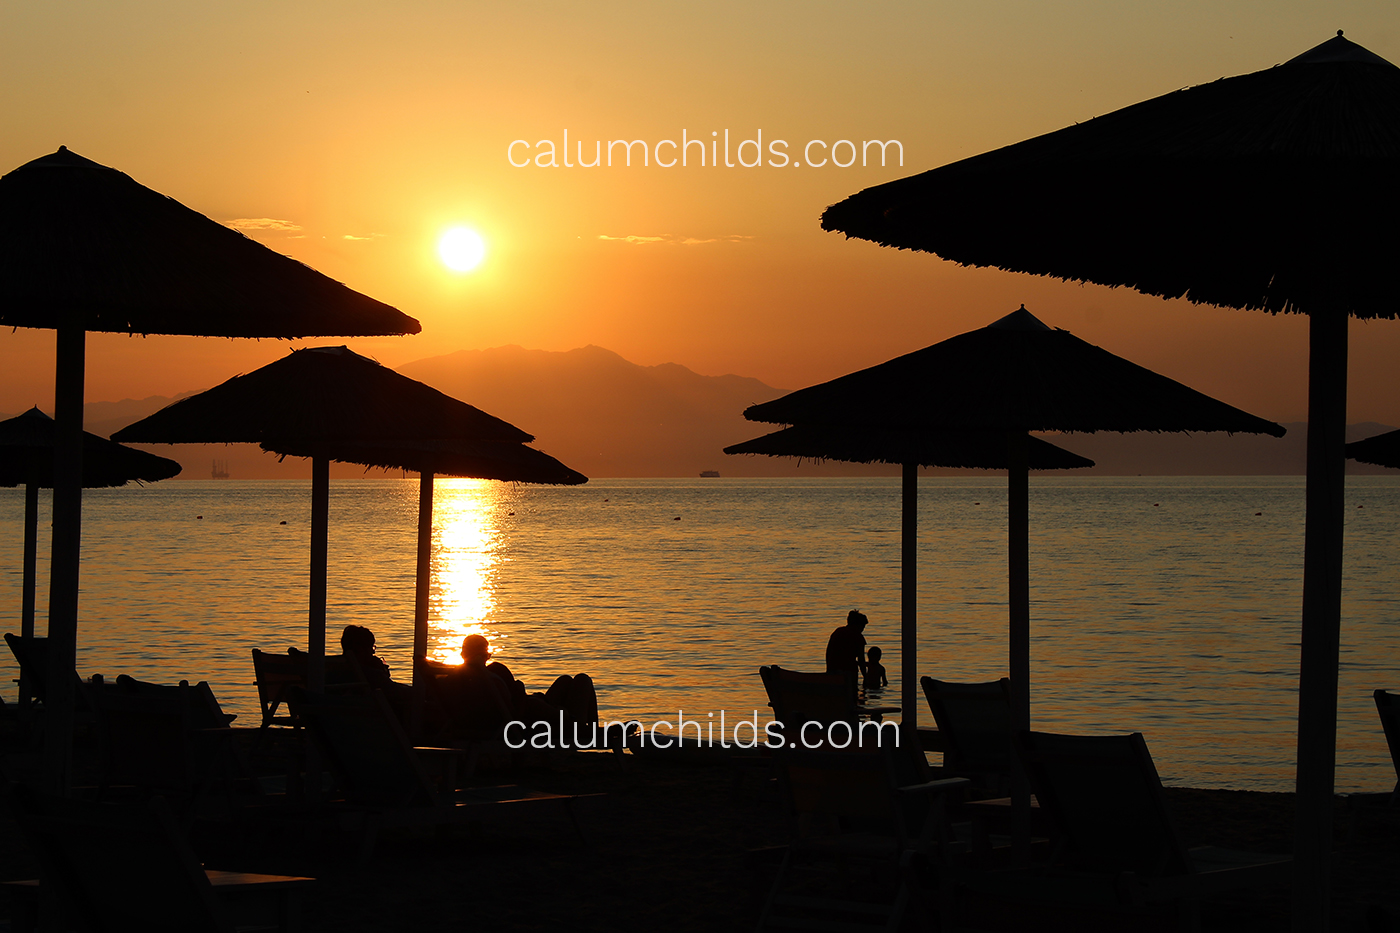 Multiple umbrellas and people sitting on sunbeds in the foreground, with a sunset in the background.